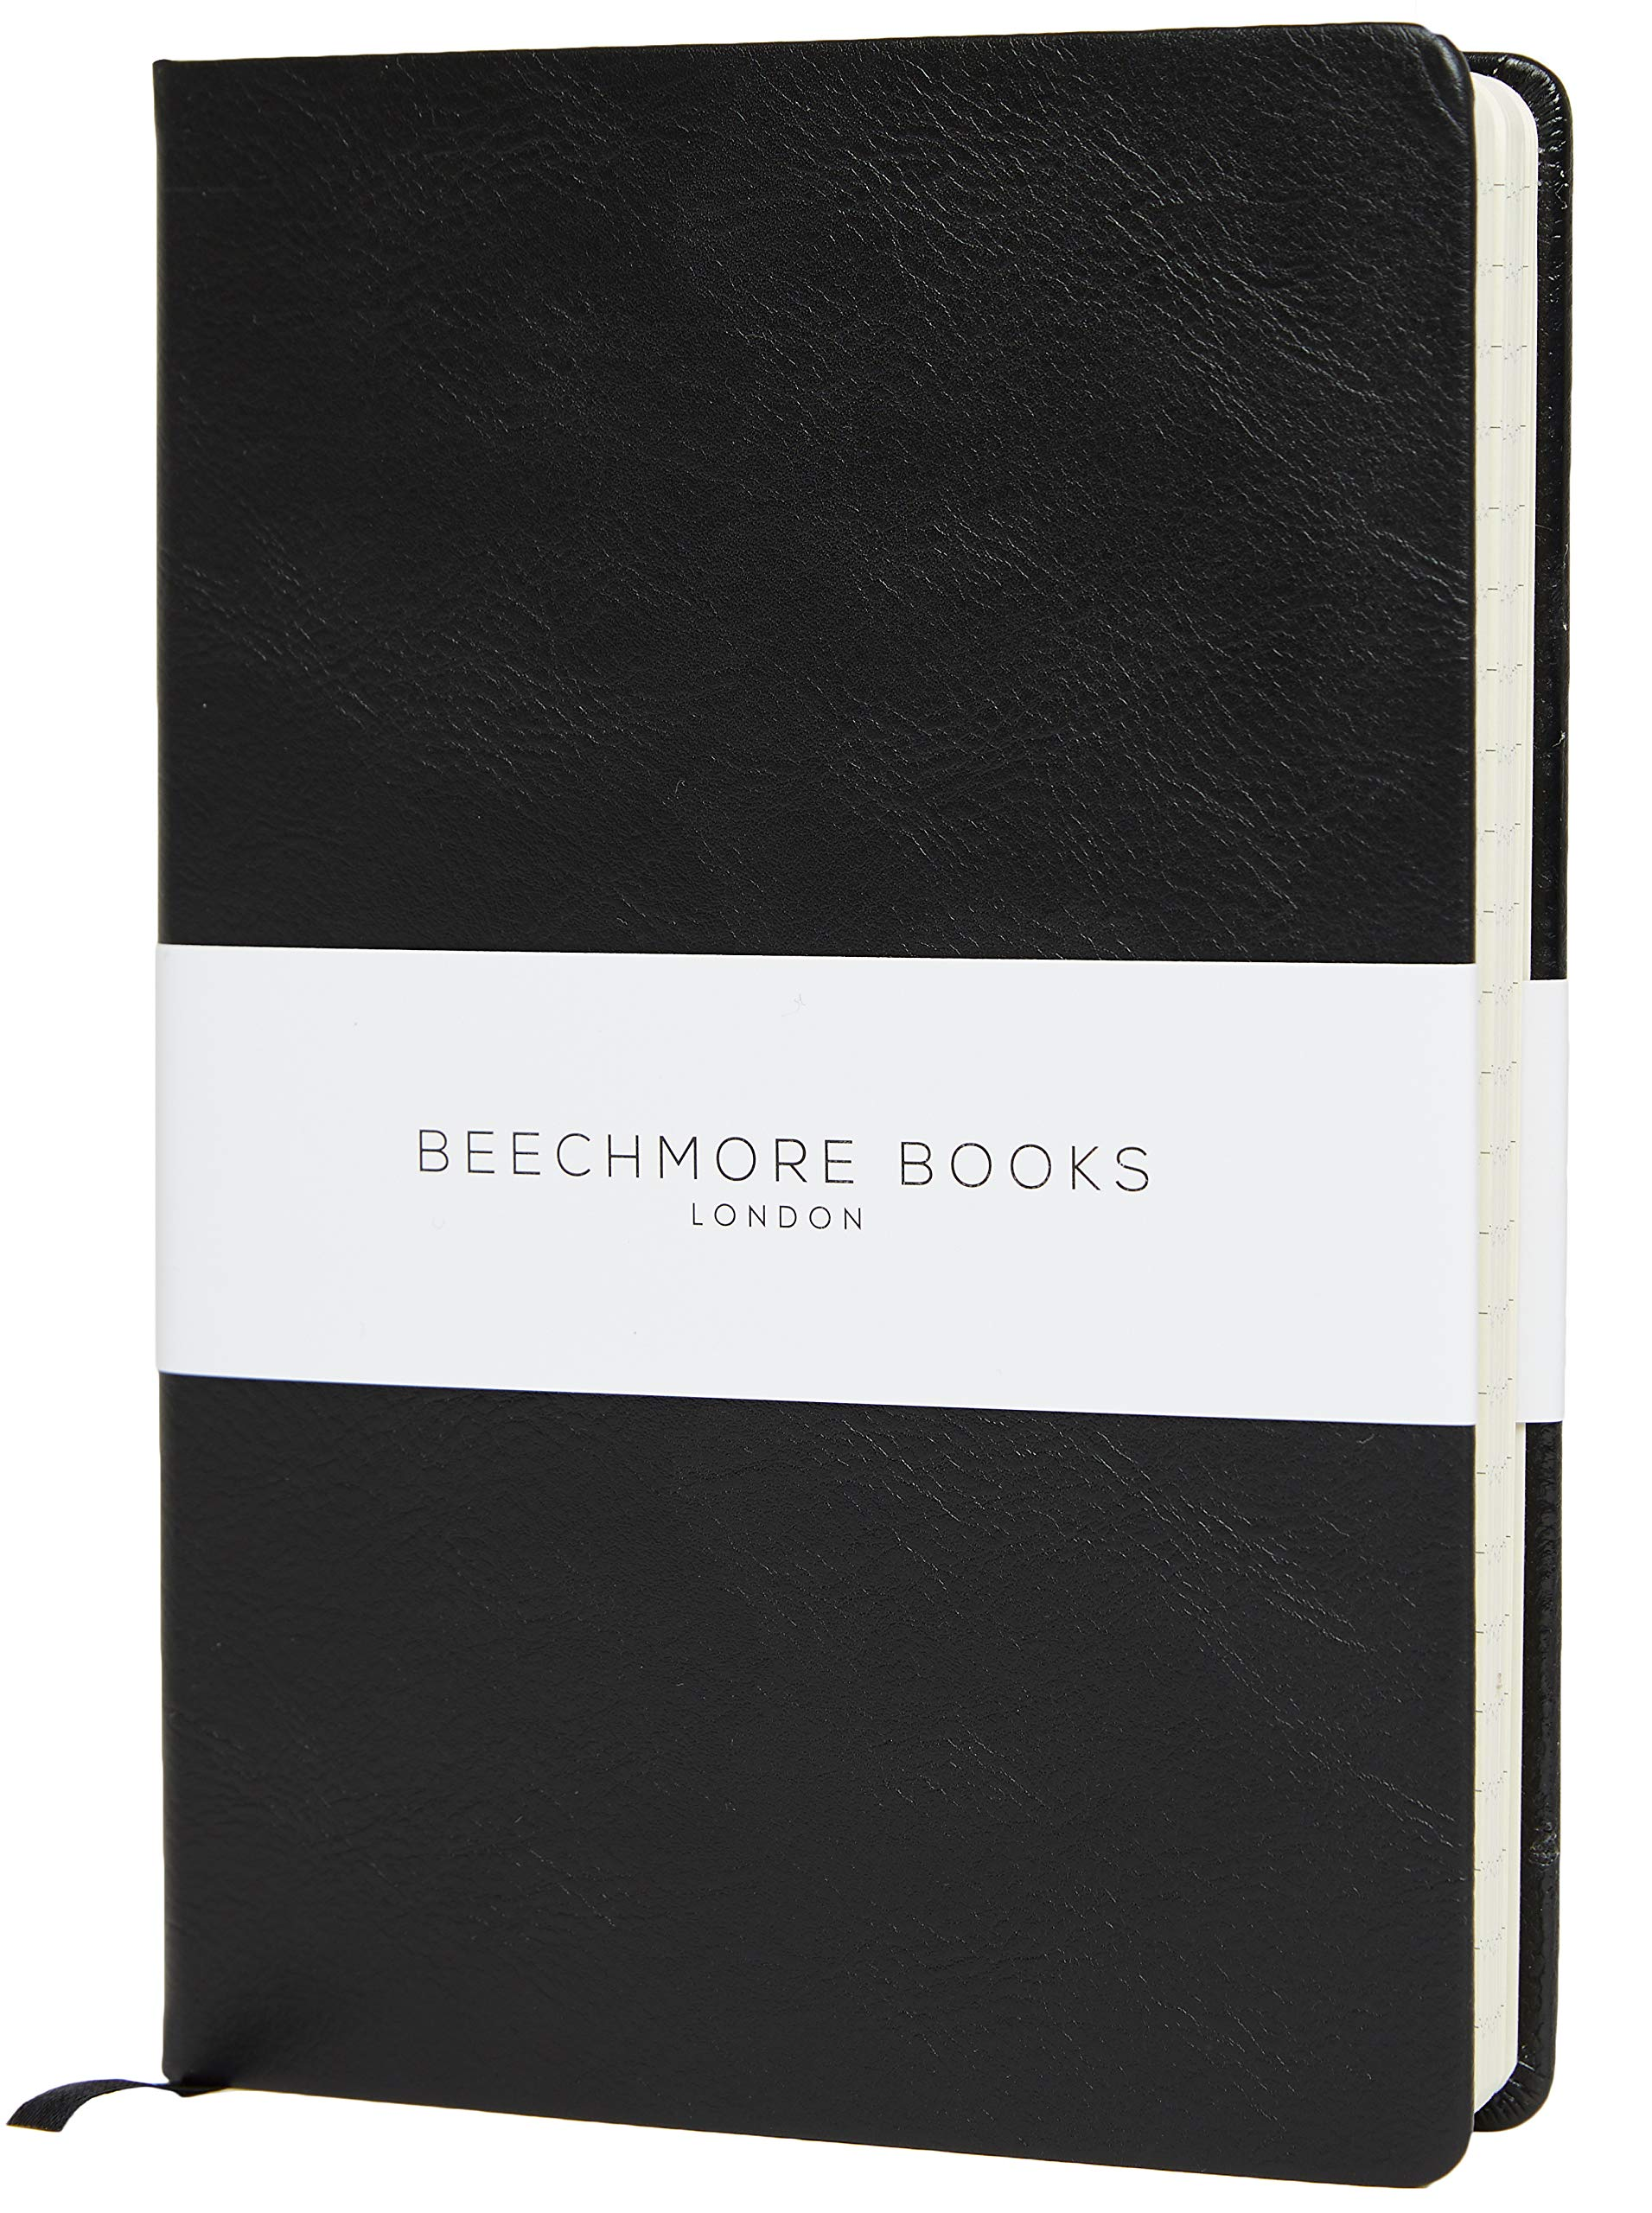 Bullet Notebook - Premium British A5 Dotted Journal by Beechmore Books   Hardcover Vegan Leather, Thick 120gsm Cream Paper, Dot Grid Notebook in Gift Box (Charcoal Black)